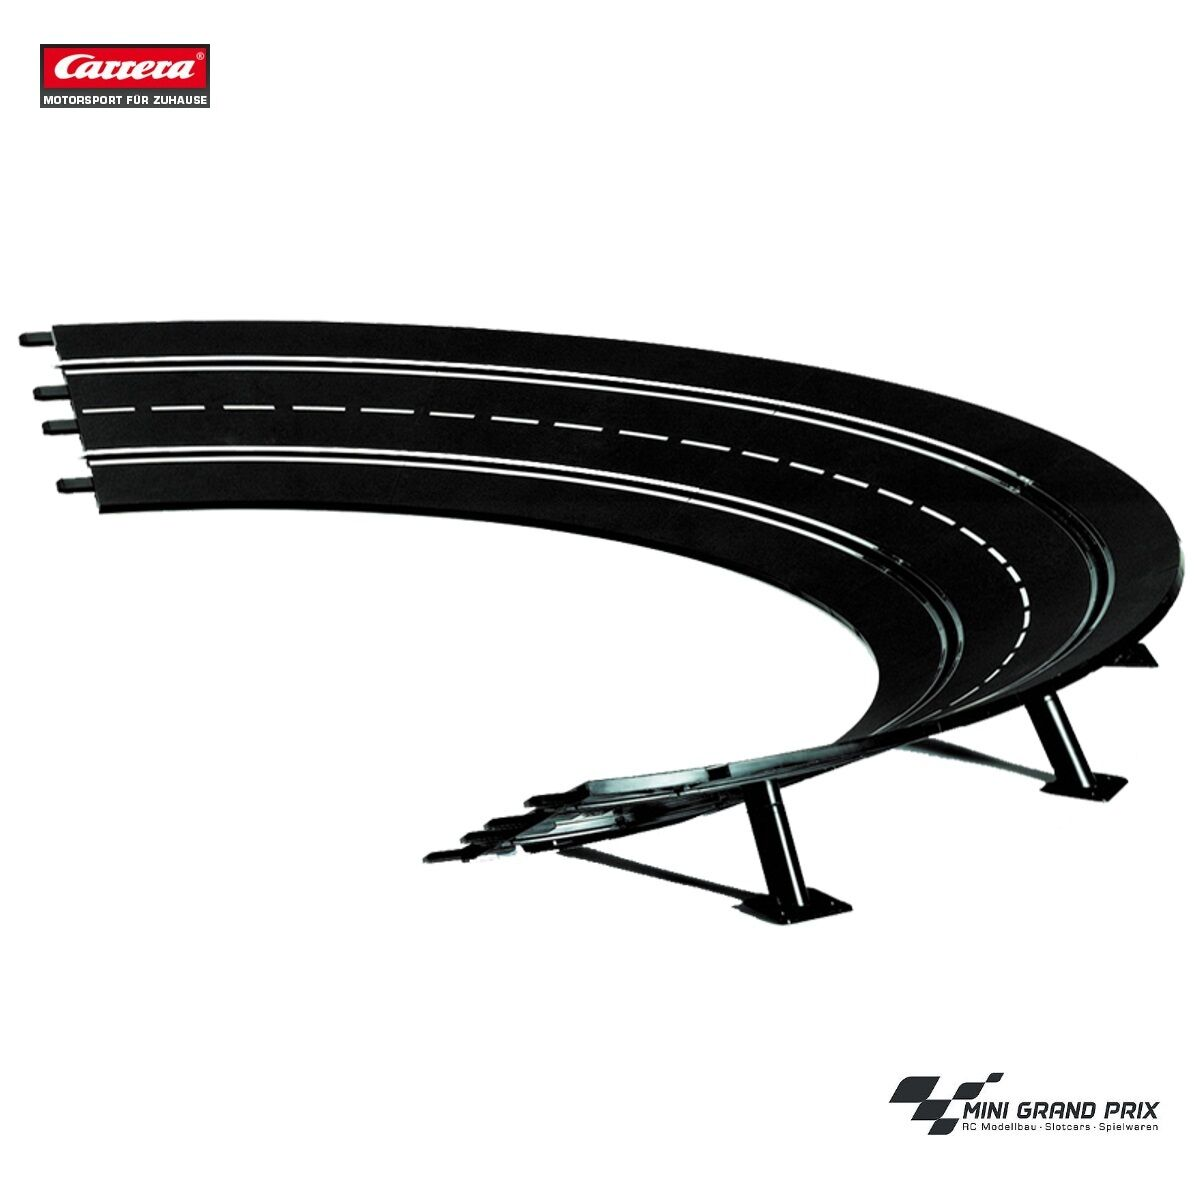 Carrera Digital 132 124 Evolution Steep Curve 2 30° 20575